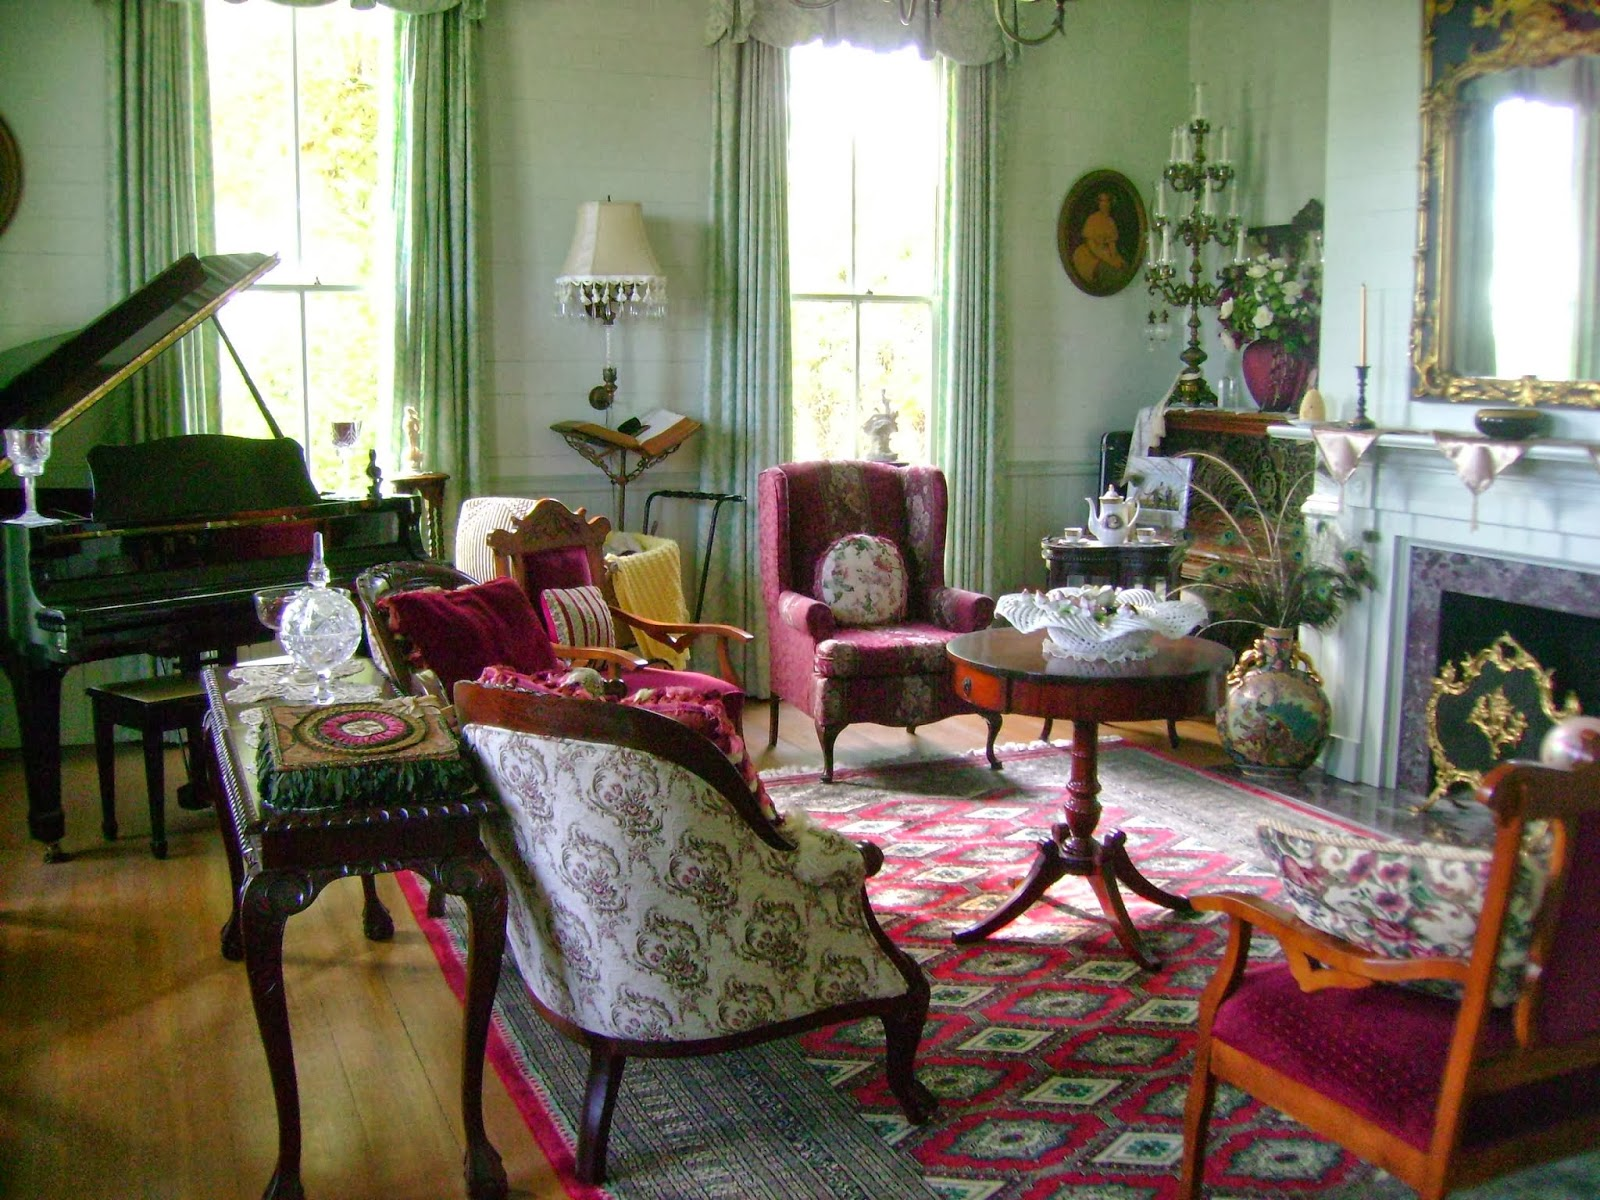 Bed And Breakfast Near Peddler